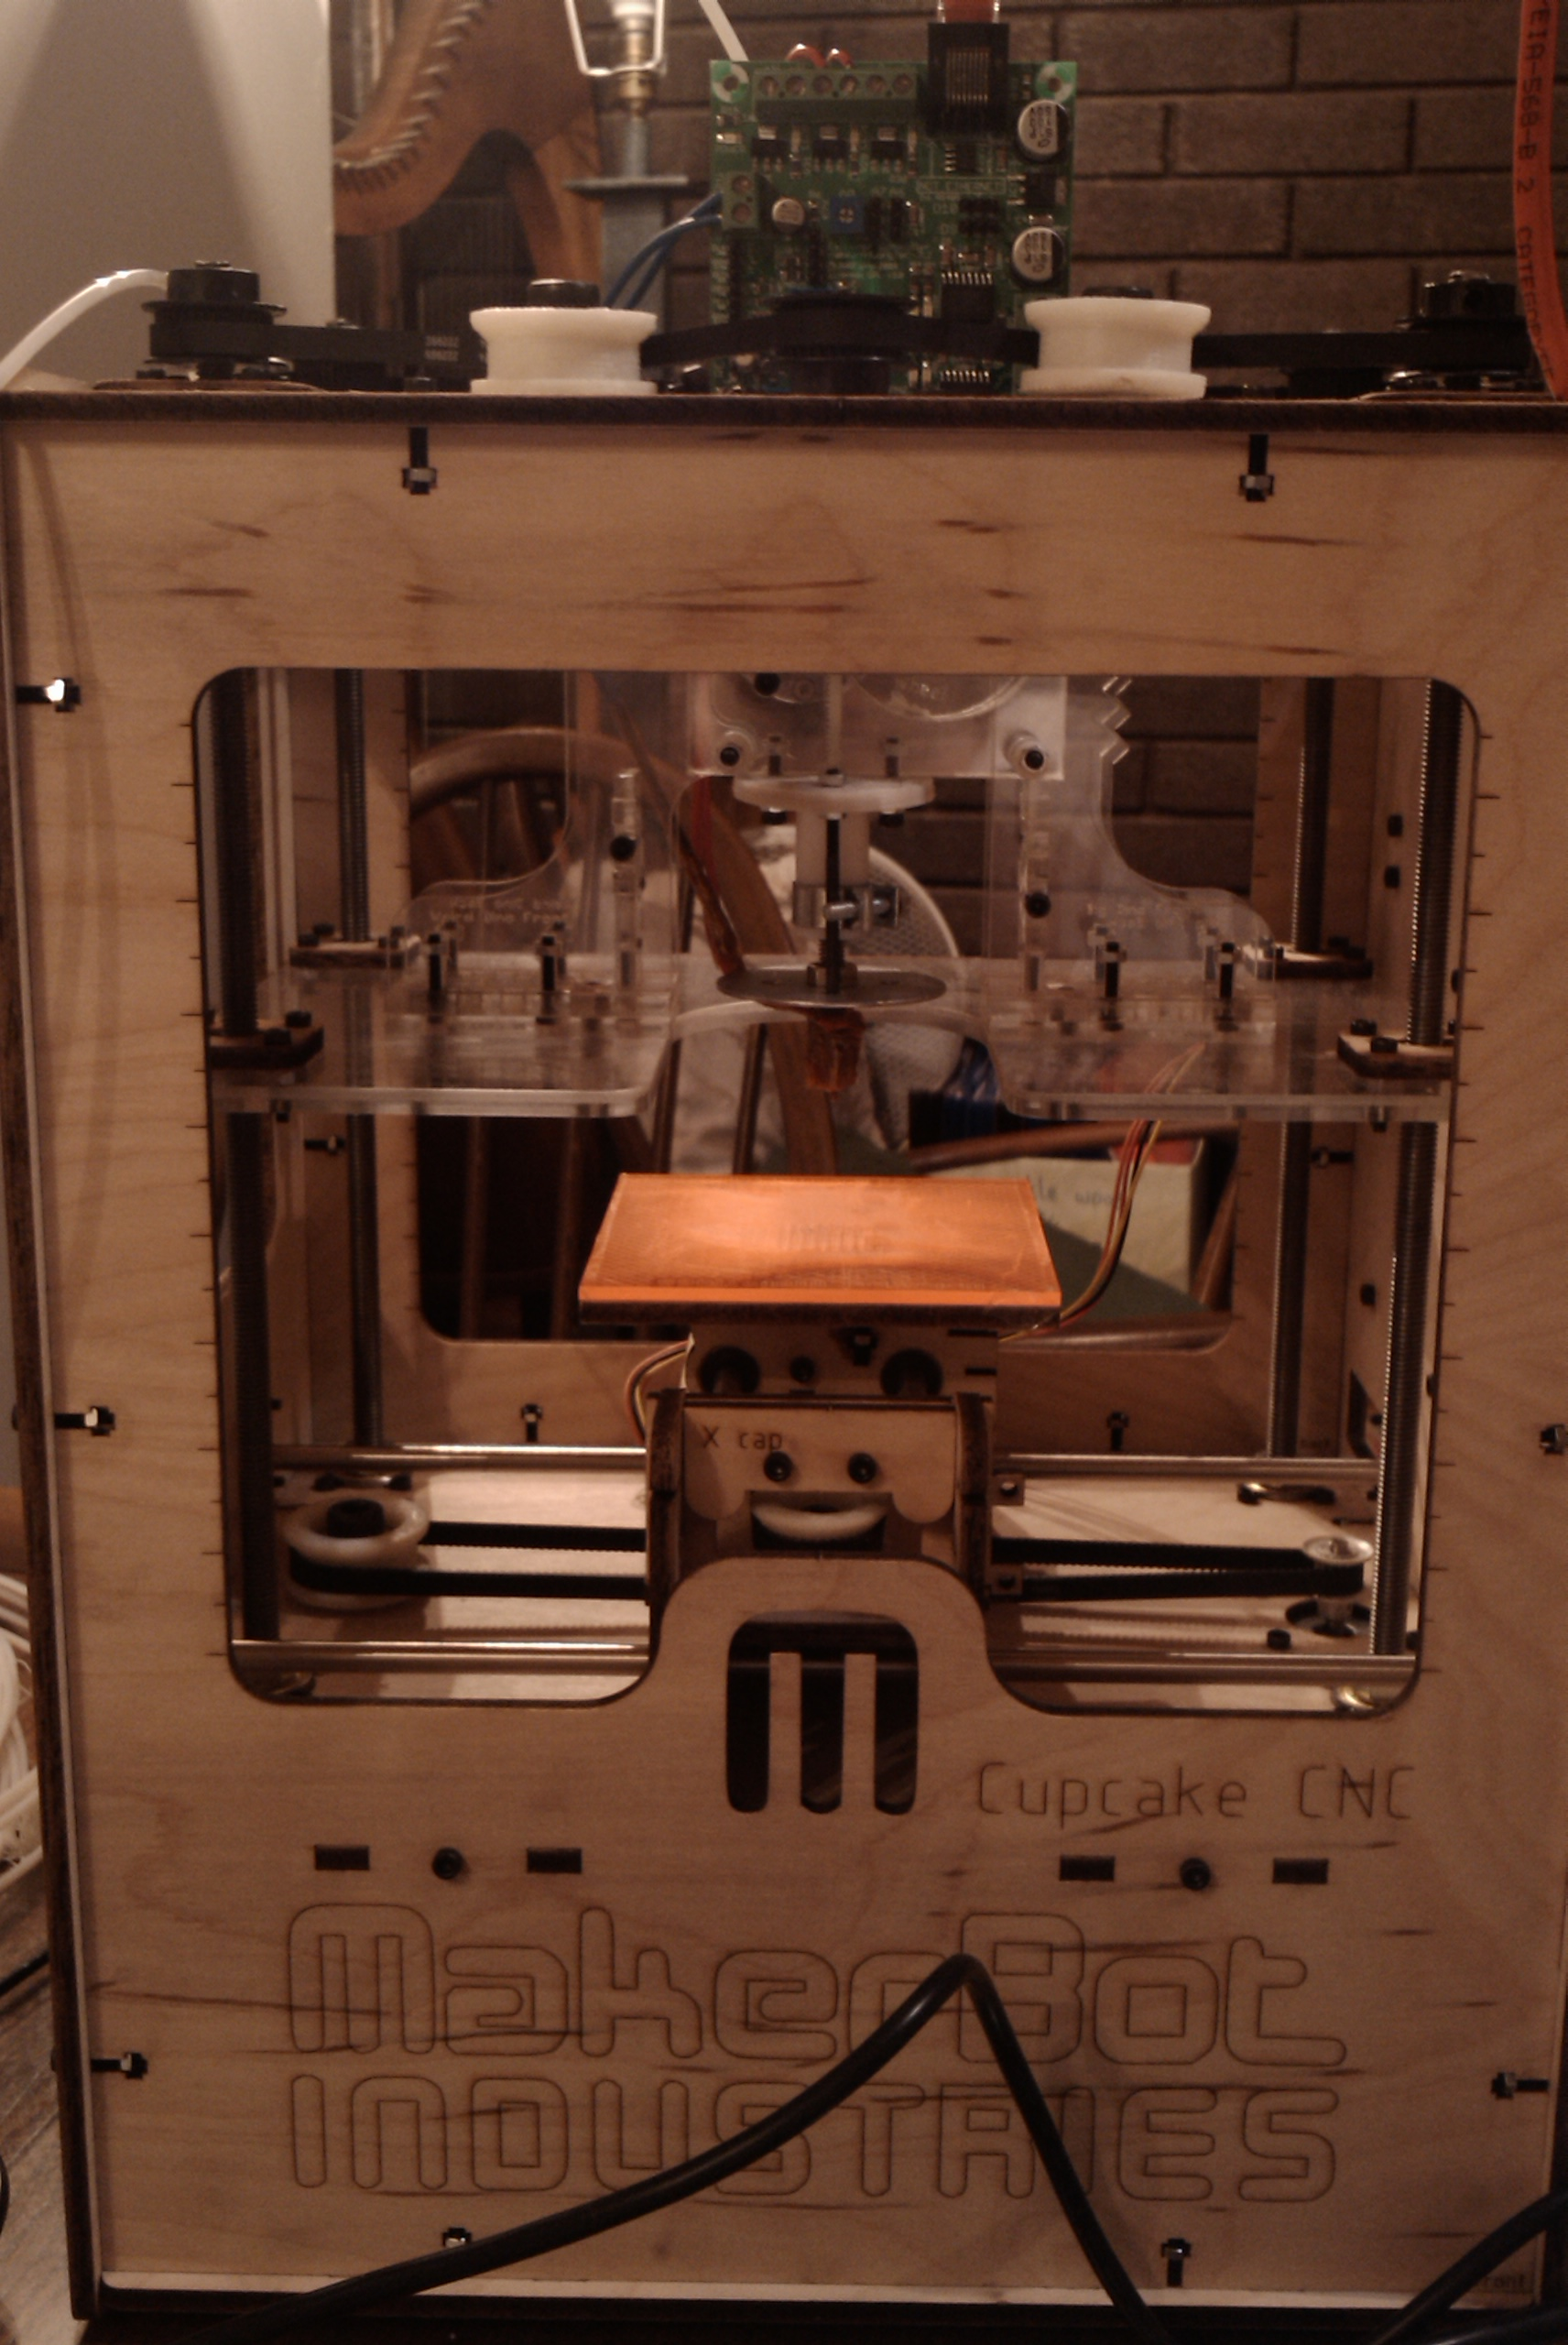 Showing all the Juicy bits of the Plastruder in the Makerbot case